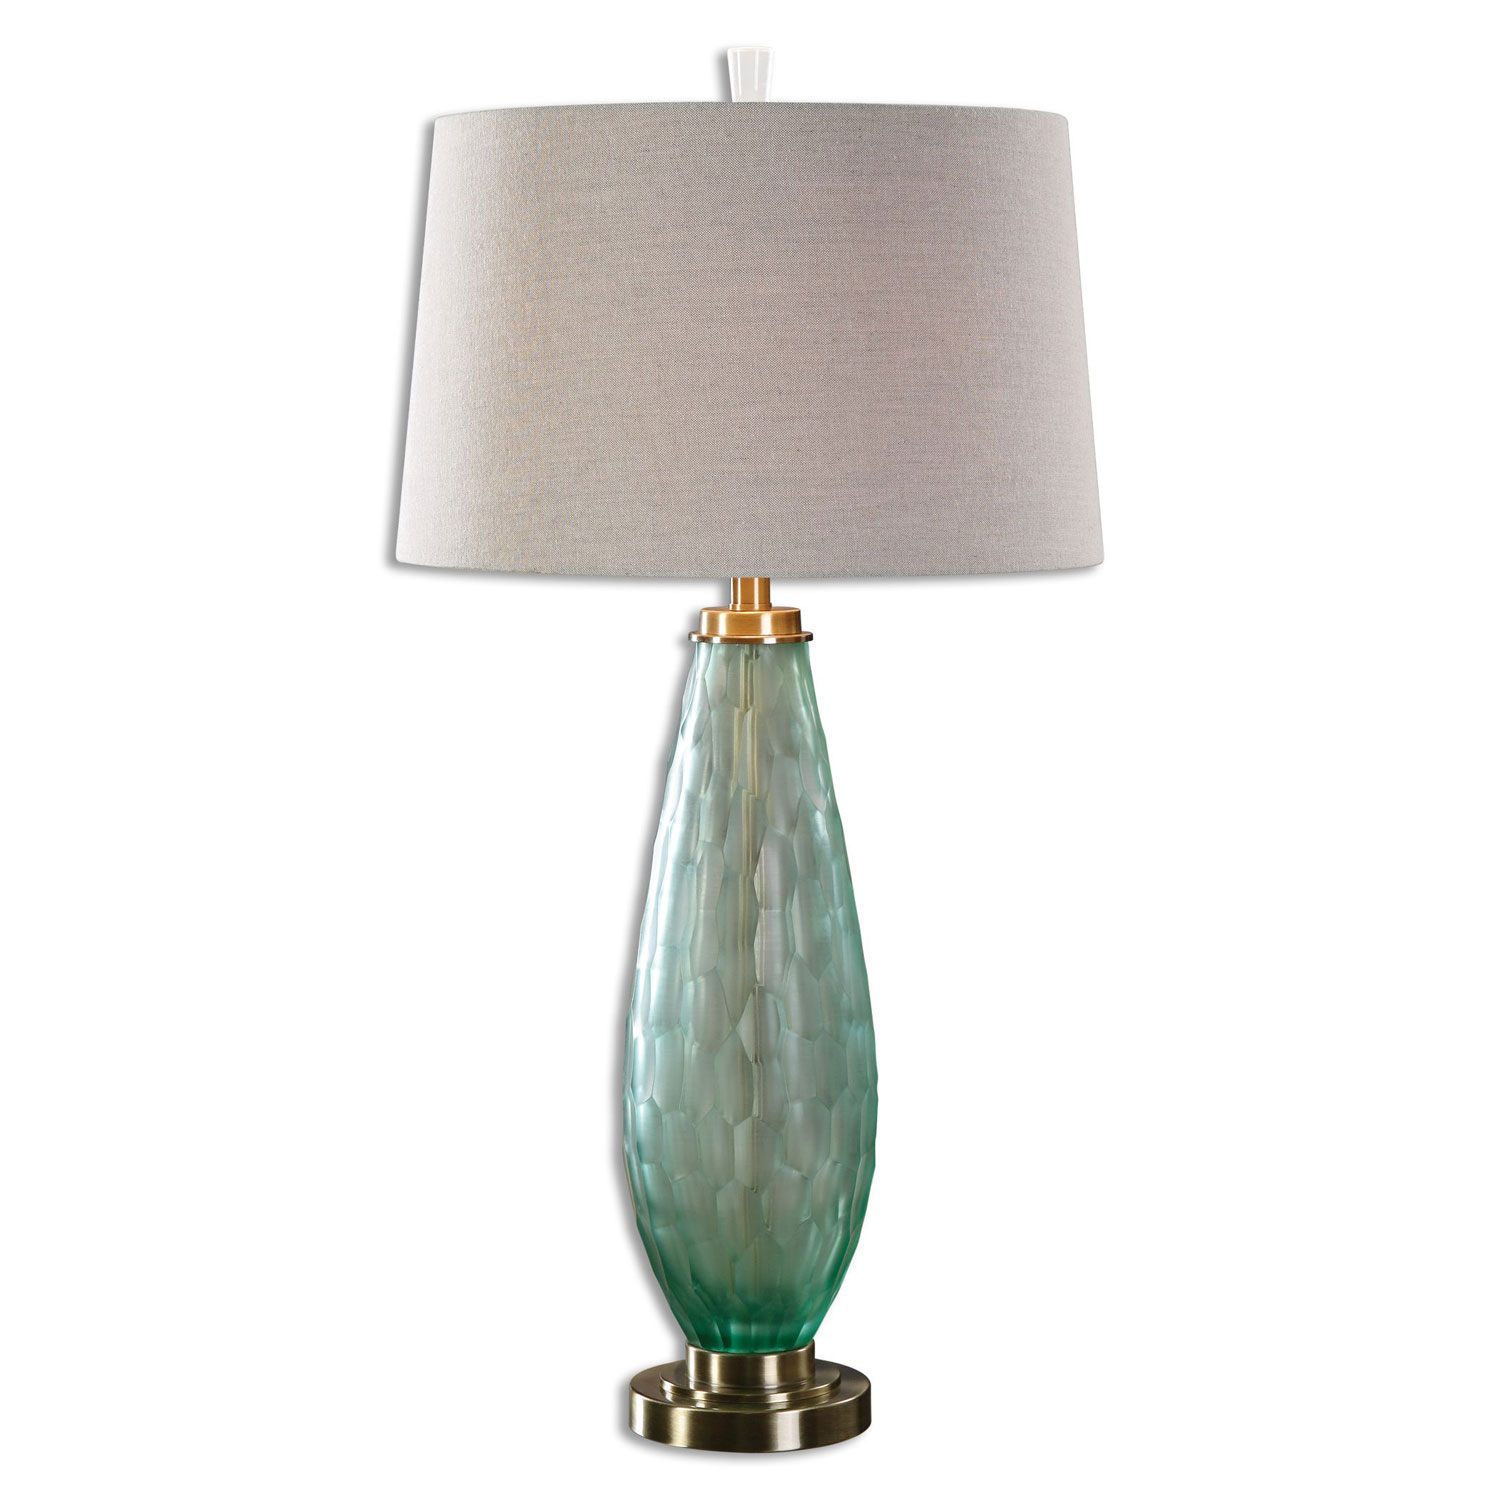 sea glass table lamp photo - 8